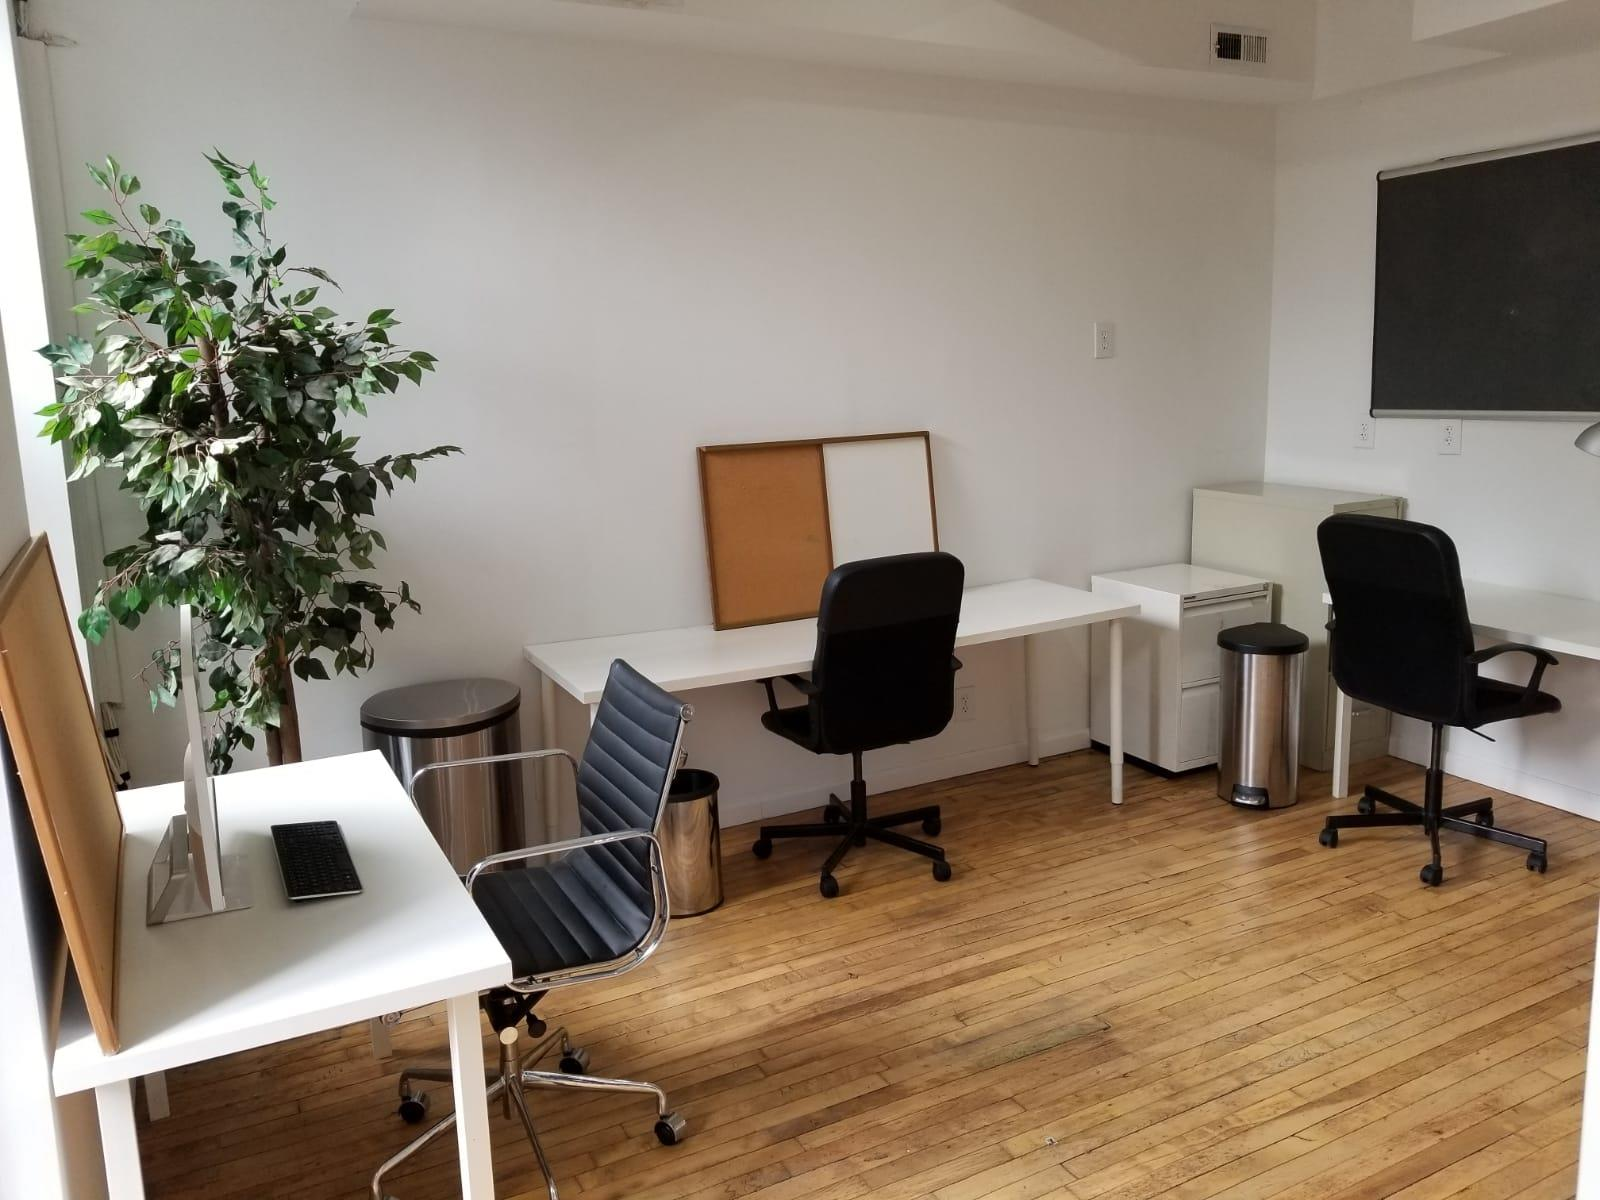 Conquest - Creative office 2 exposure sublet